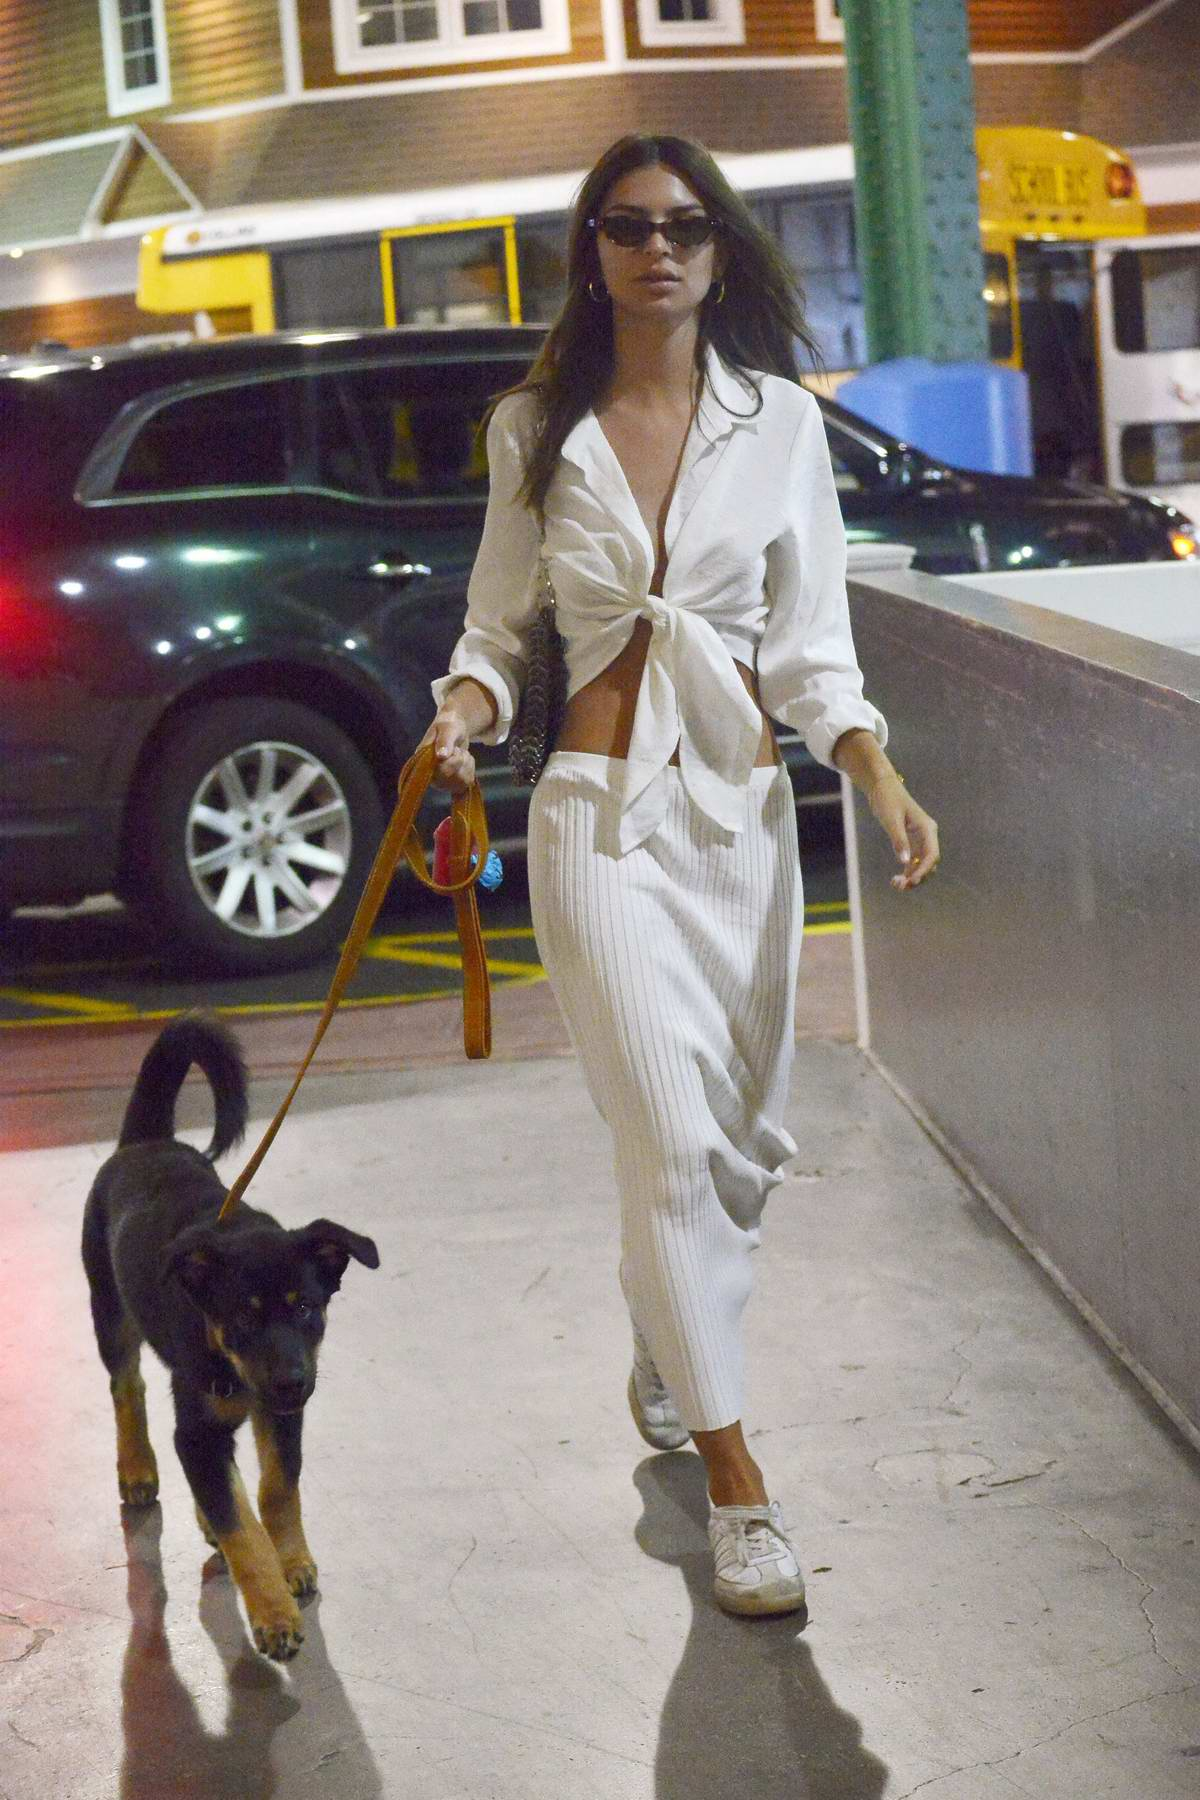 Emily Ratajkowski dons all-white as she steps out with her dog in New York City